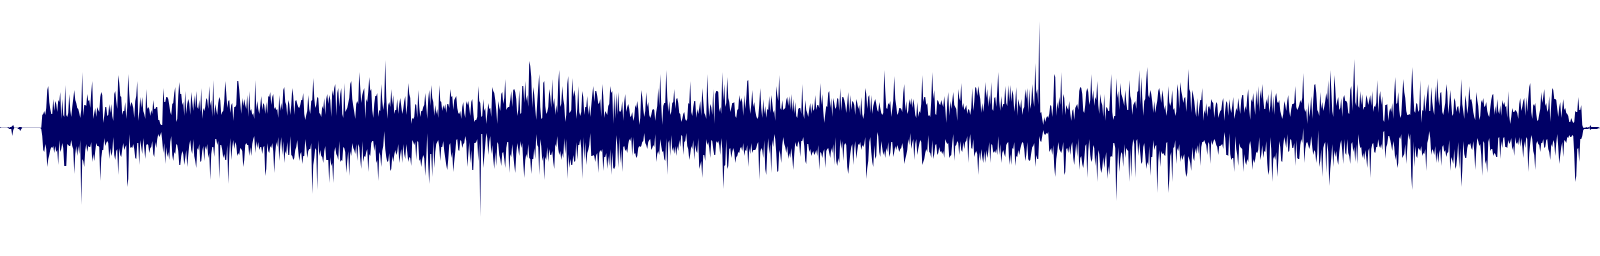 waveform of track #137775